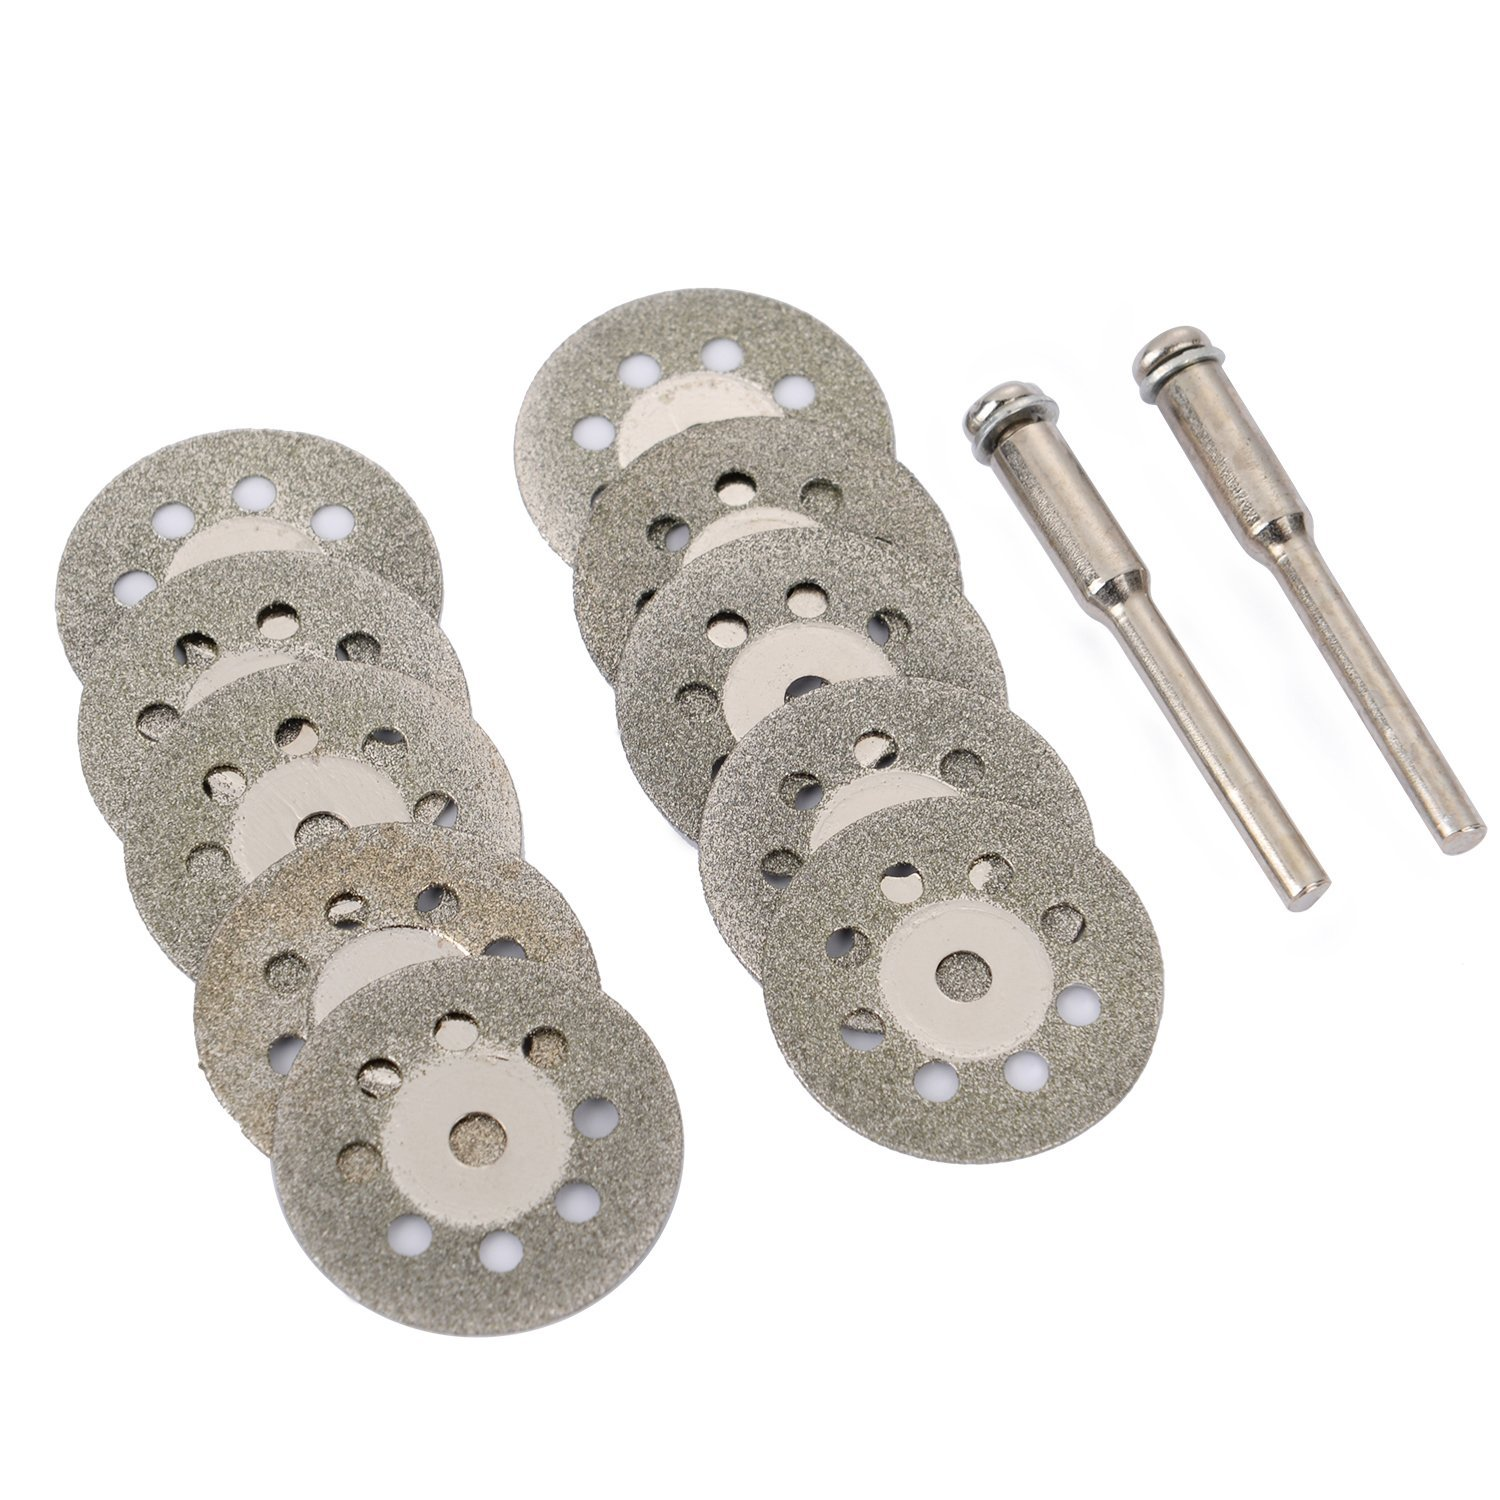 8 Sets 10Pcs Diamond  Grinding Wheel Saw Circular Cutting Disc Rotary Tool Diamond Discs Blades Power Tools Accessories 22mm D30